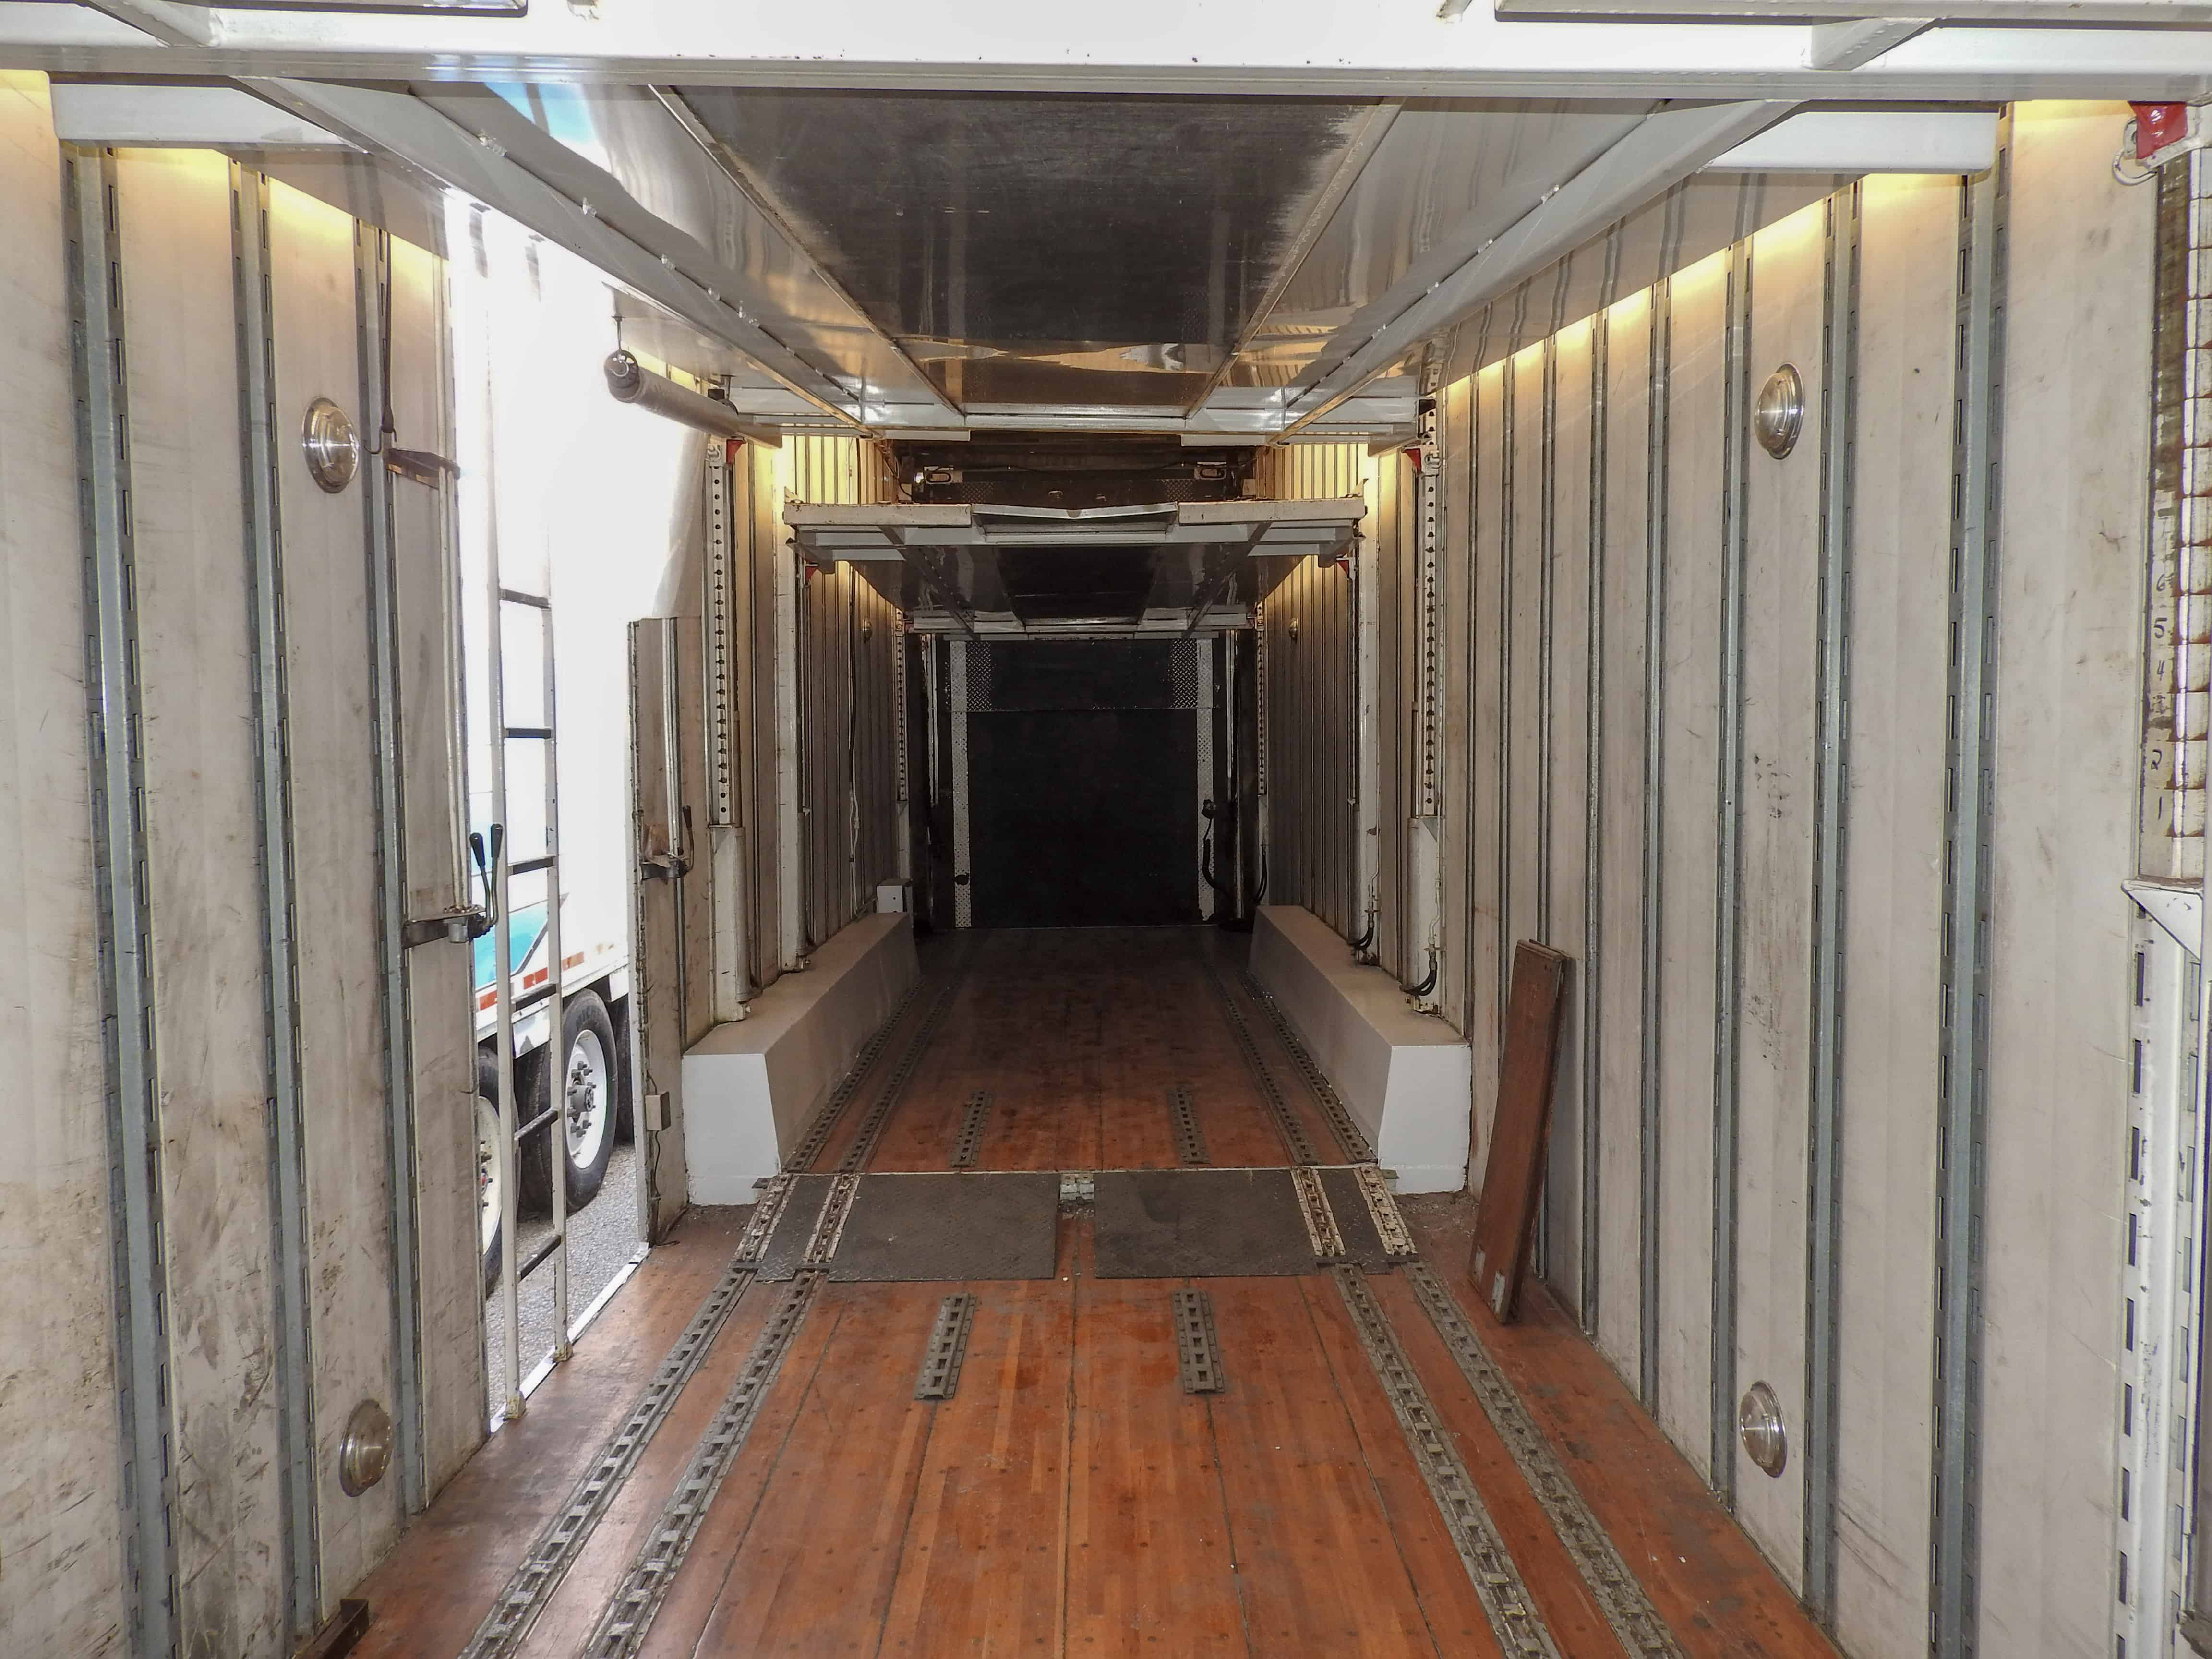 Enclosed Car Trailers for Sale